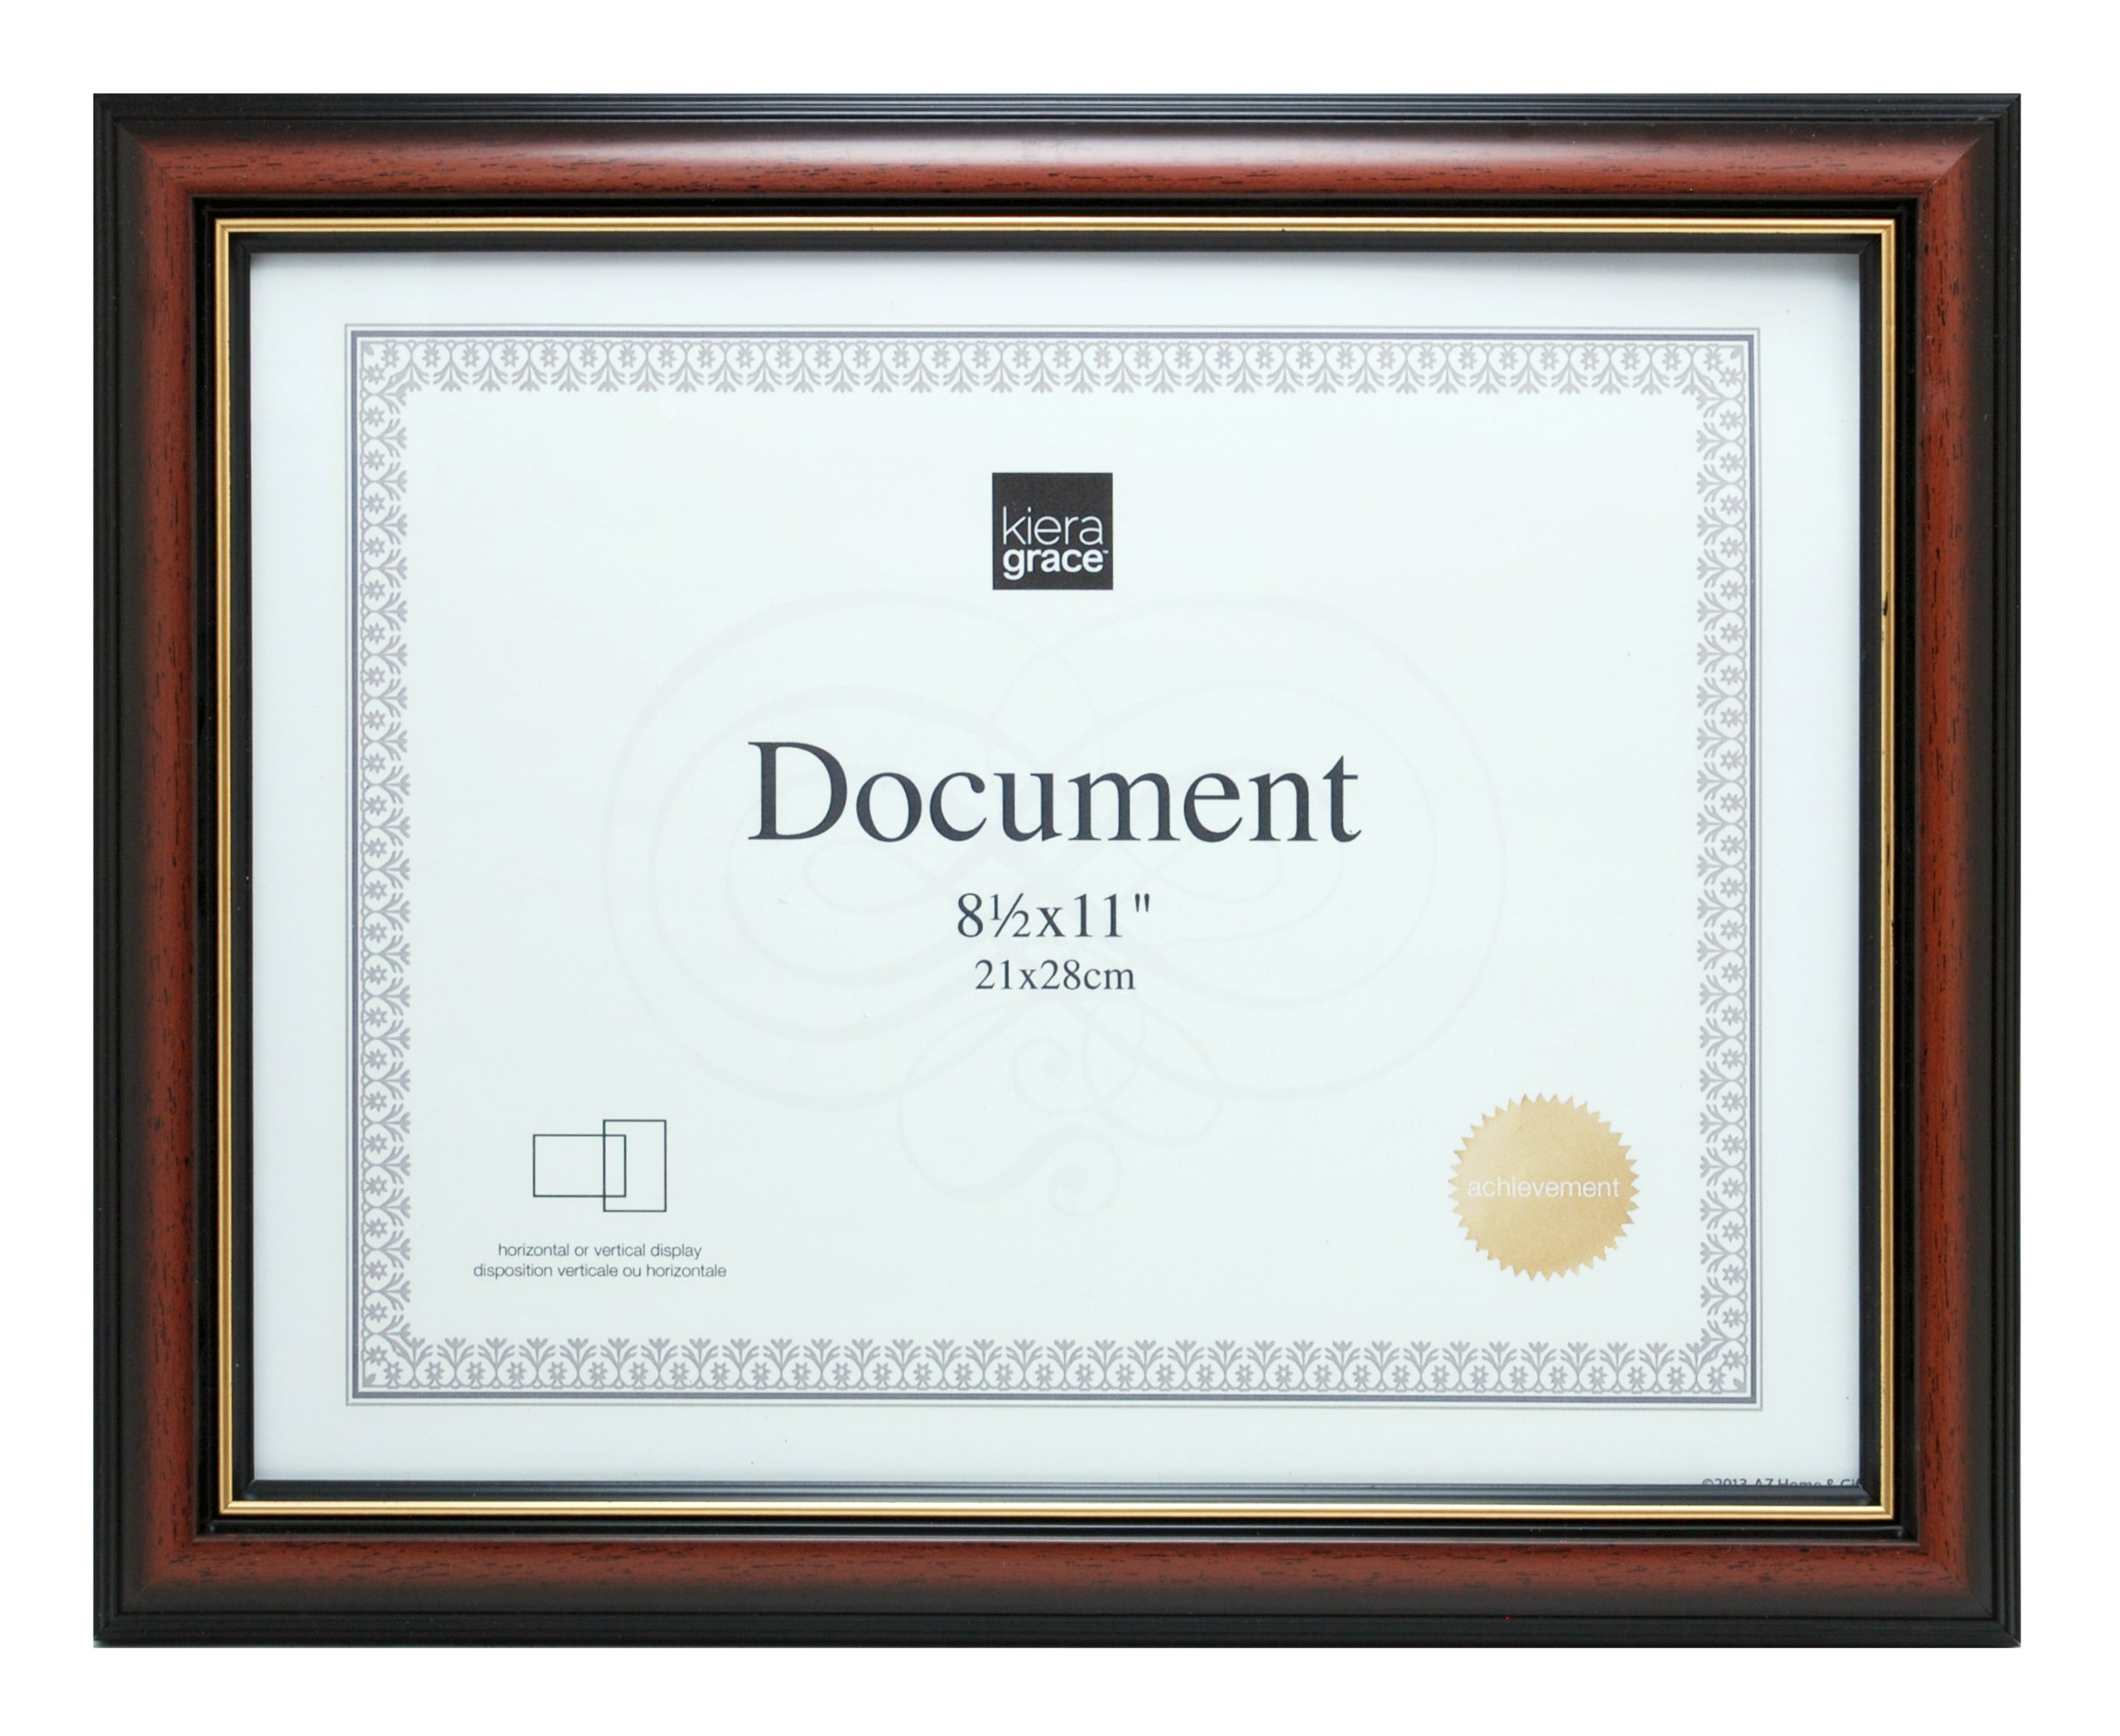 kieragrace Kylie Document Frame, Holds 8.5-Inch by 11-Inch Documents, Brown with Gold Line by kieragrace